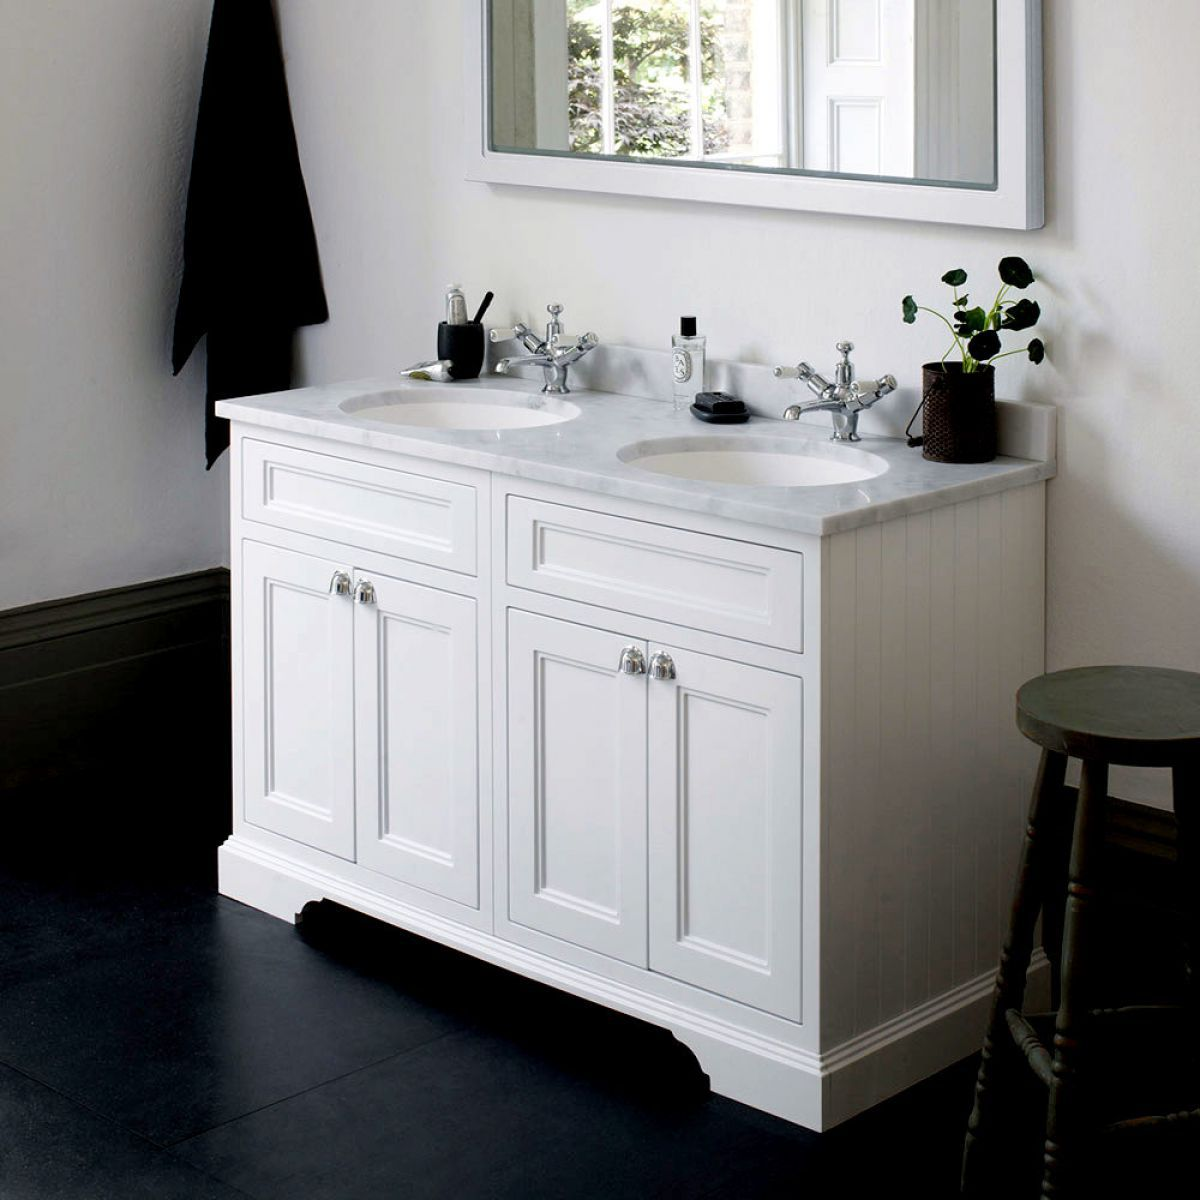 Burlington 130 Twin Basin Vanity Unit With Four Doors Uk Bathrooms Luxurybathroomcabinetsuk Cheap Bathroom Vanities Double Vanity Unit Sink Vanity Unit